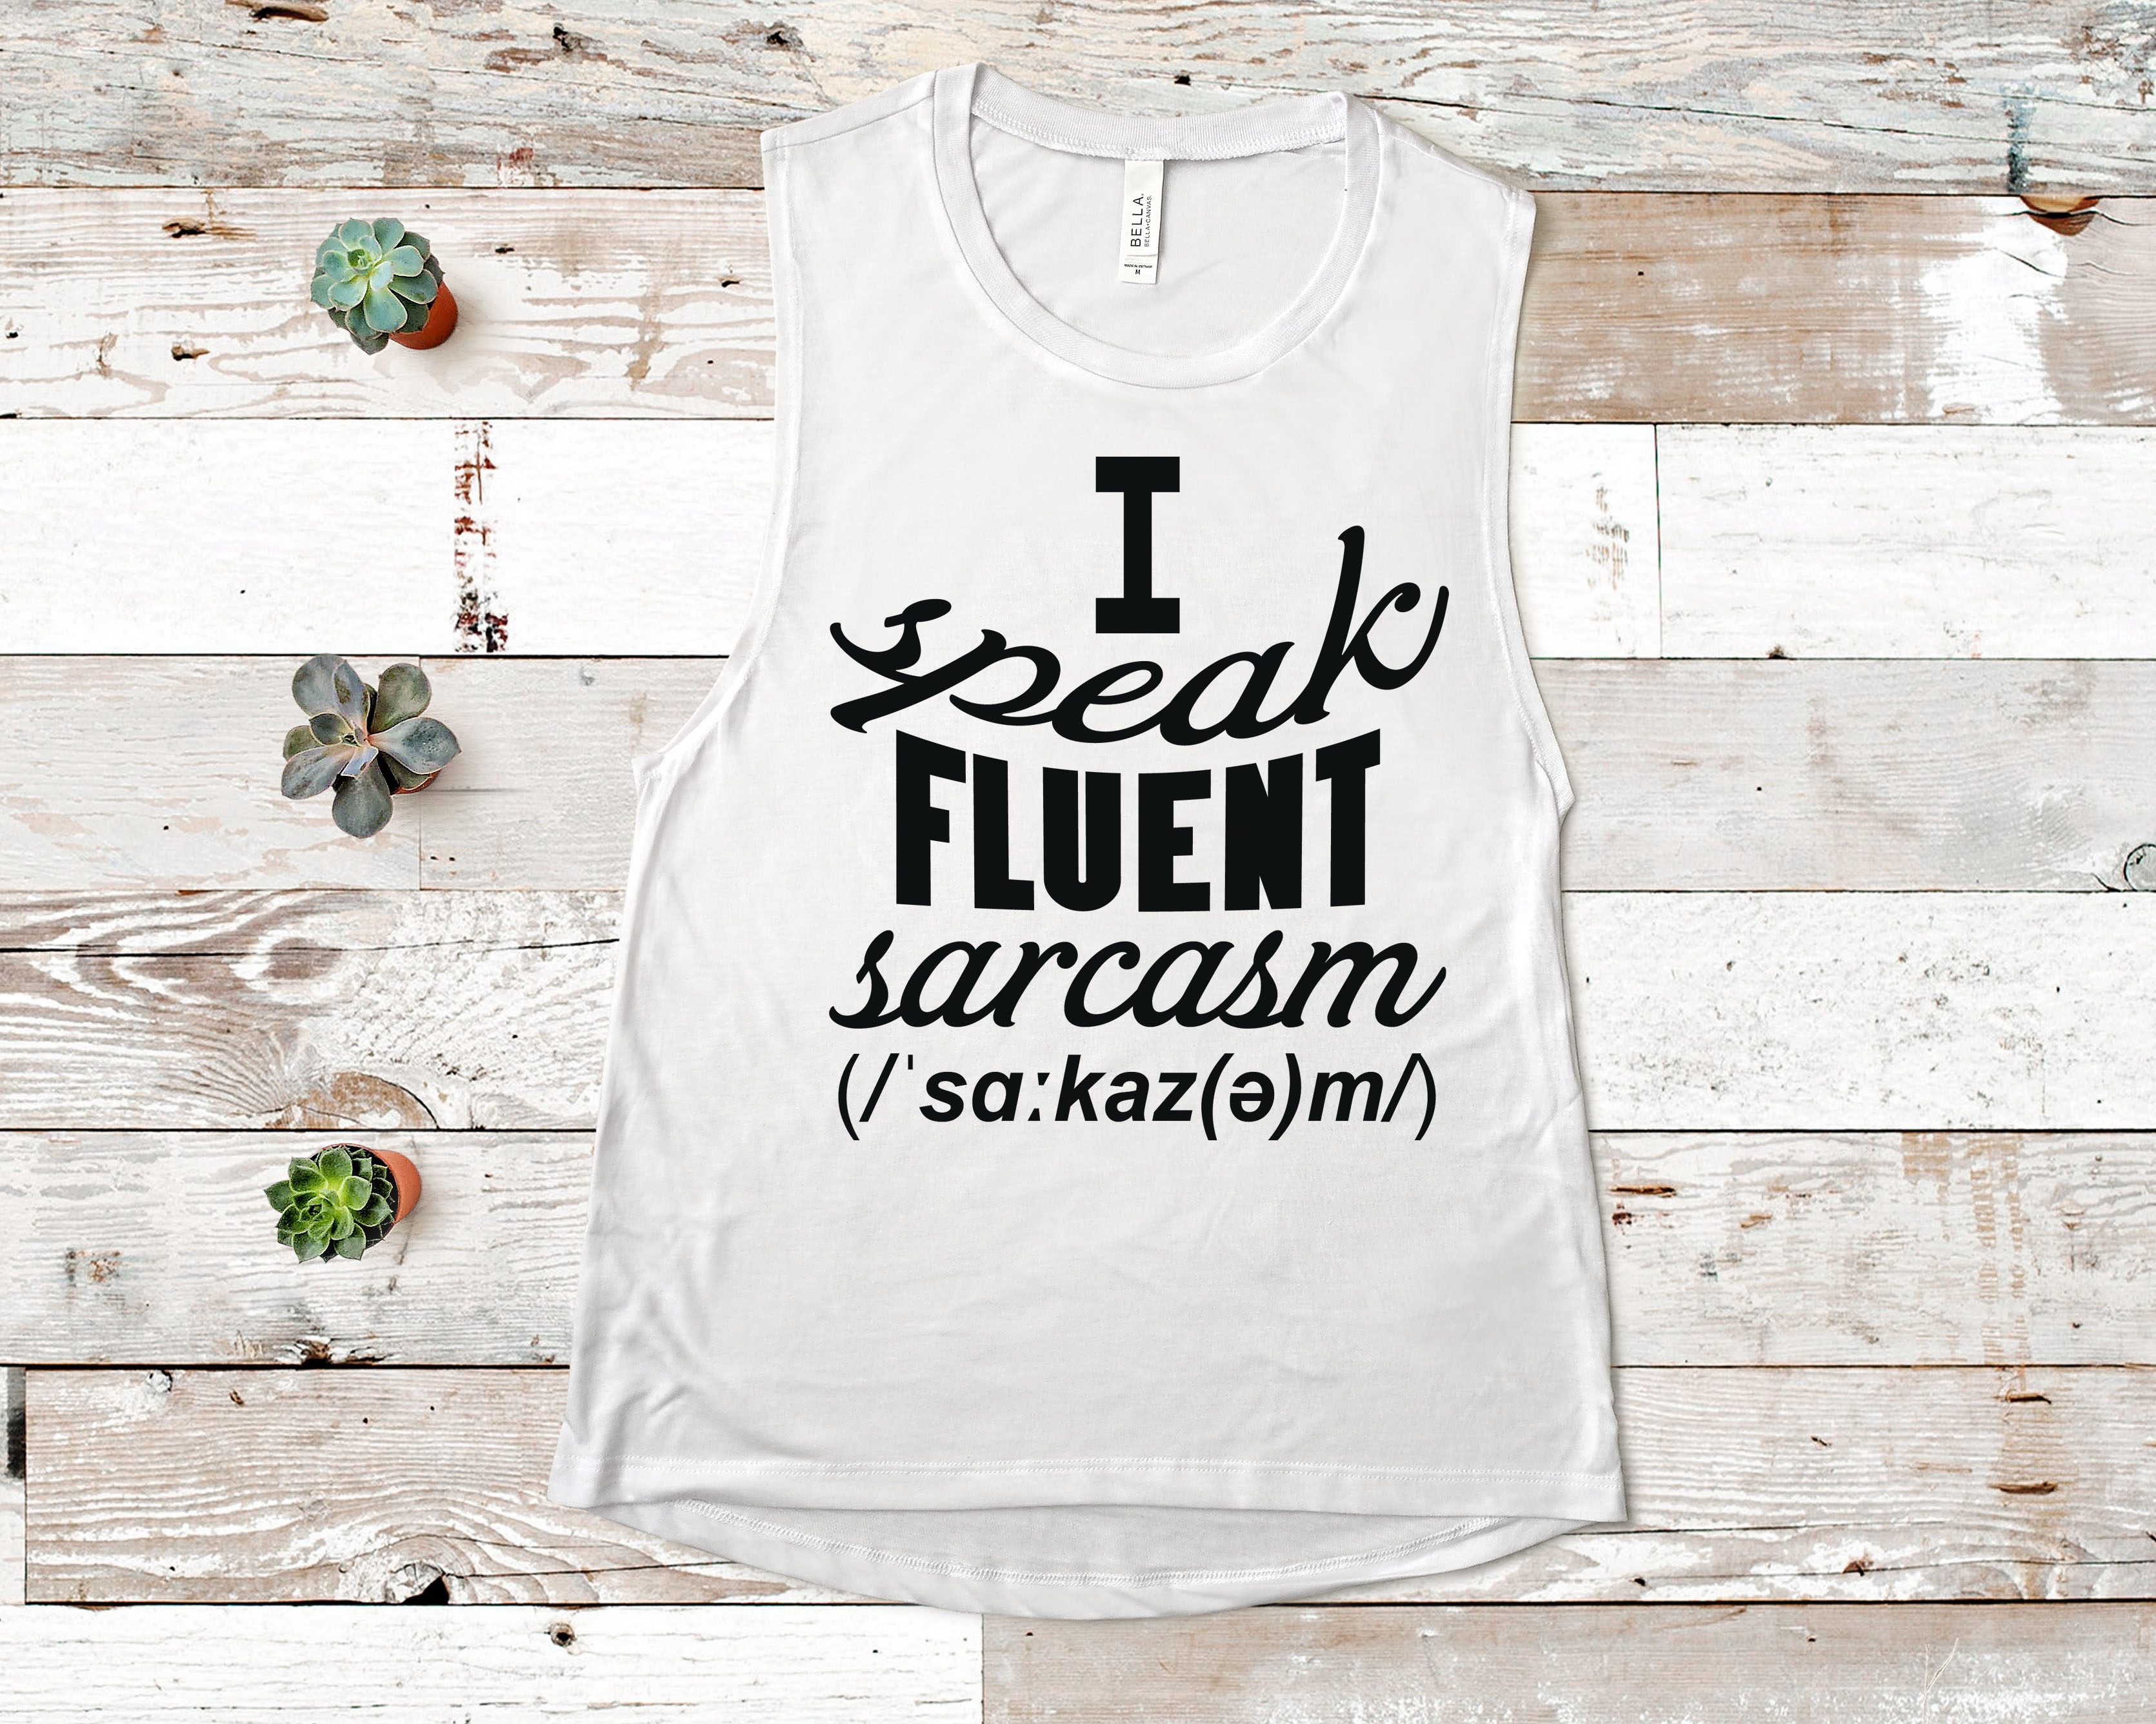 Free I speak fluent Sarcasm SVG File